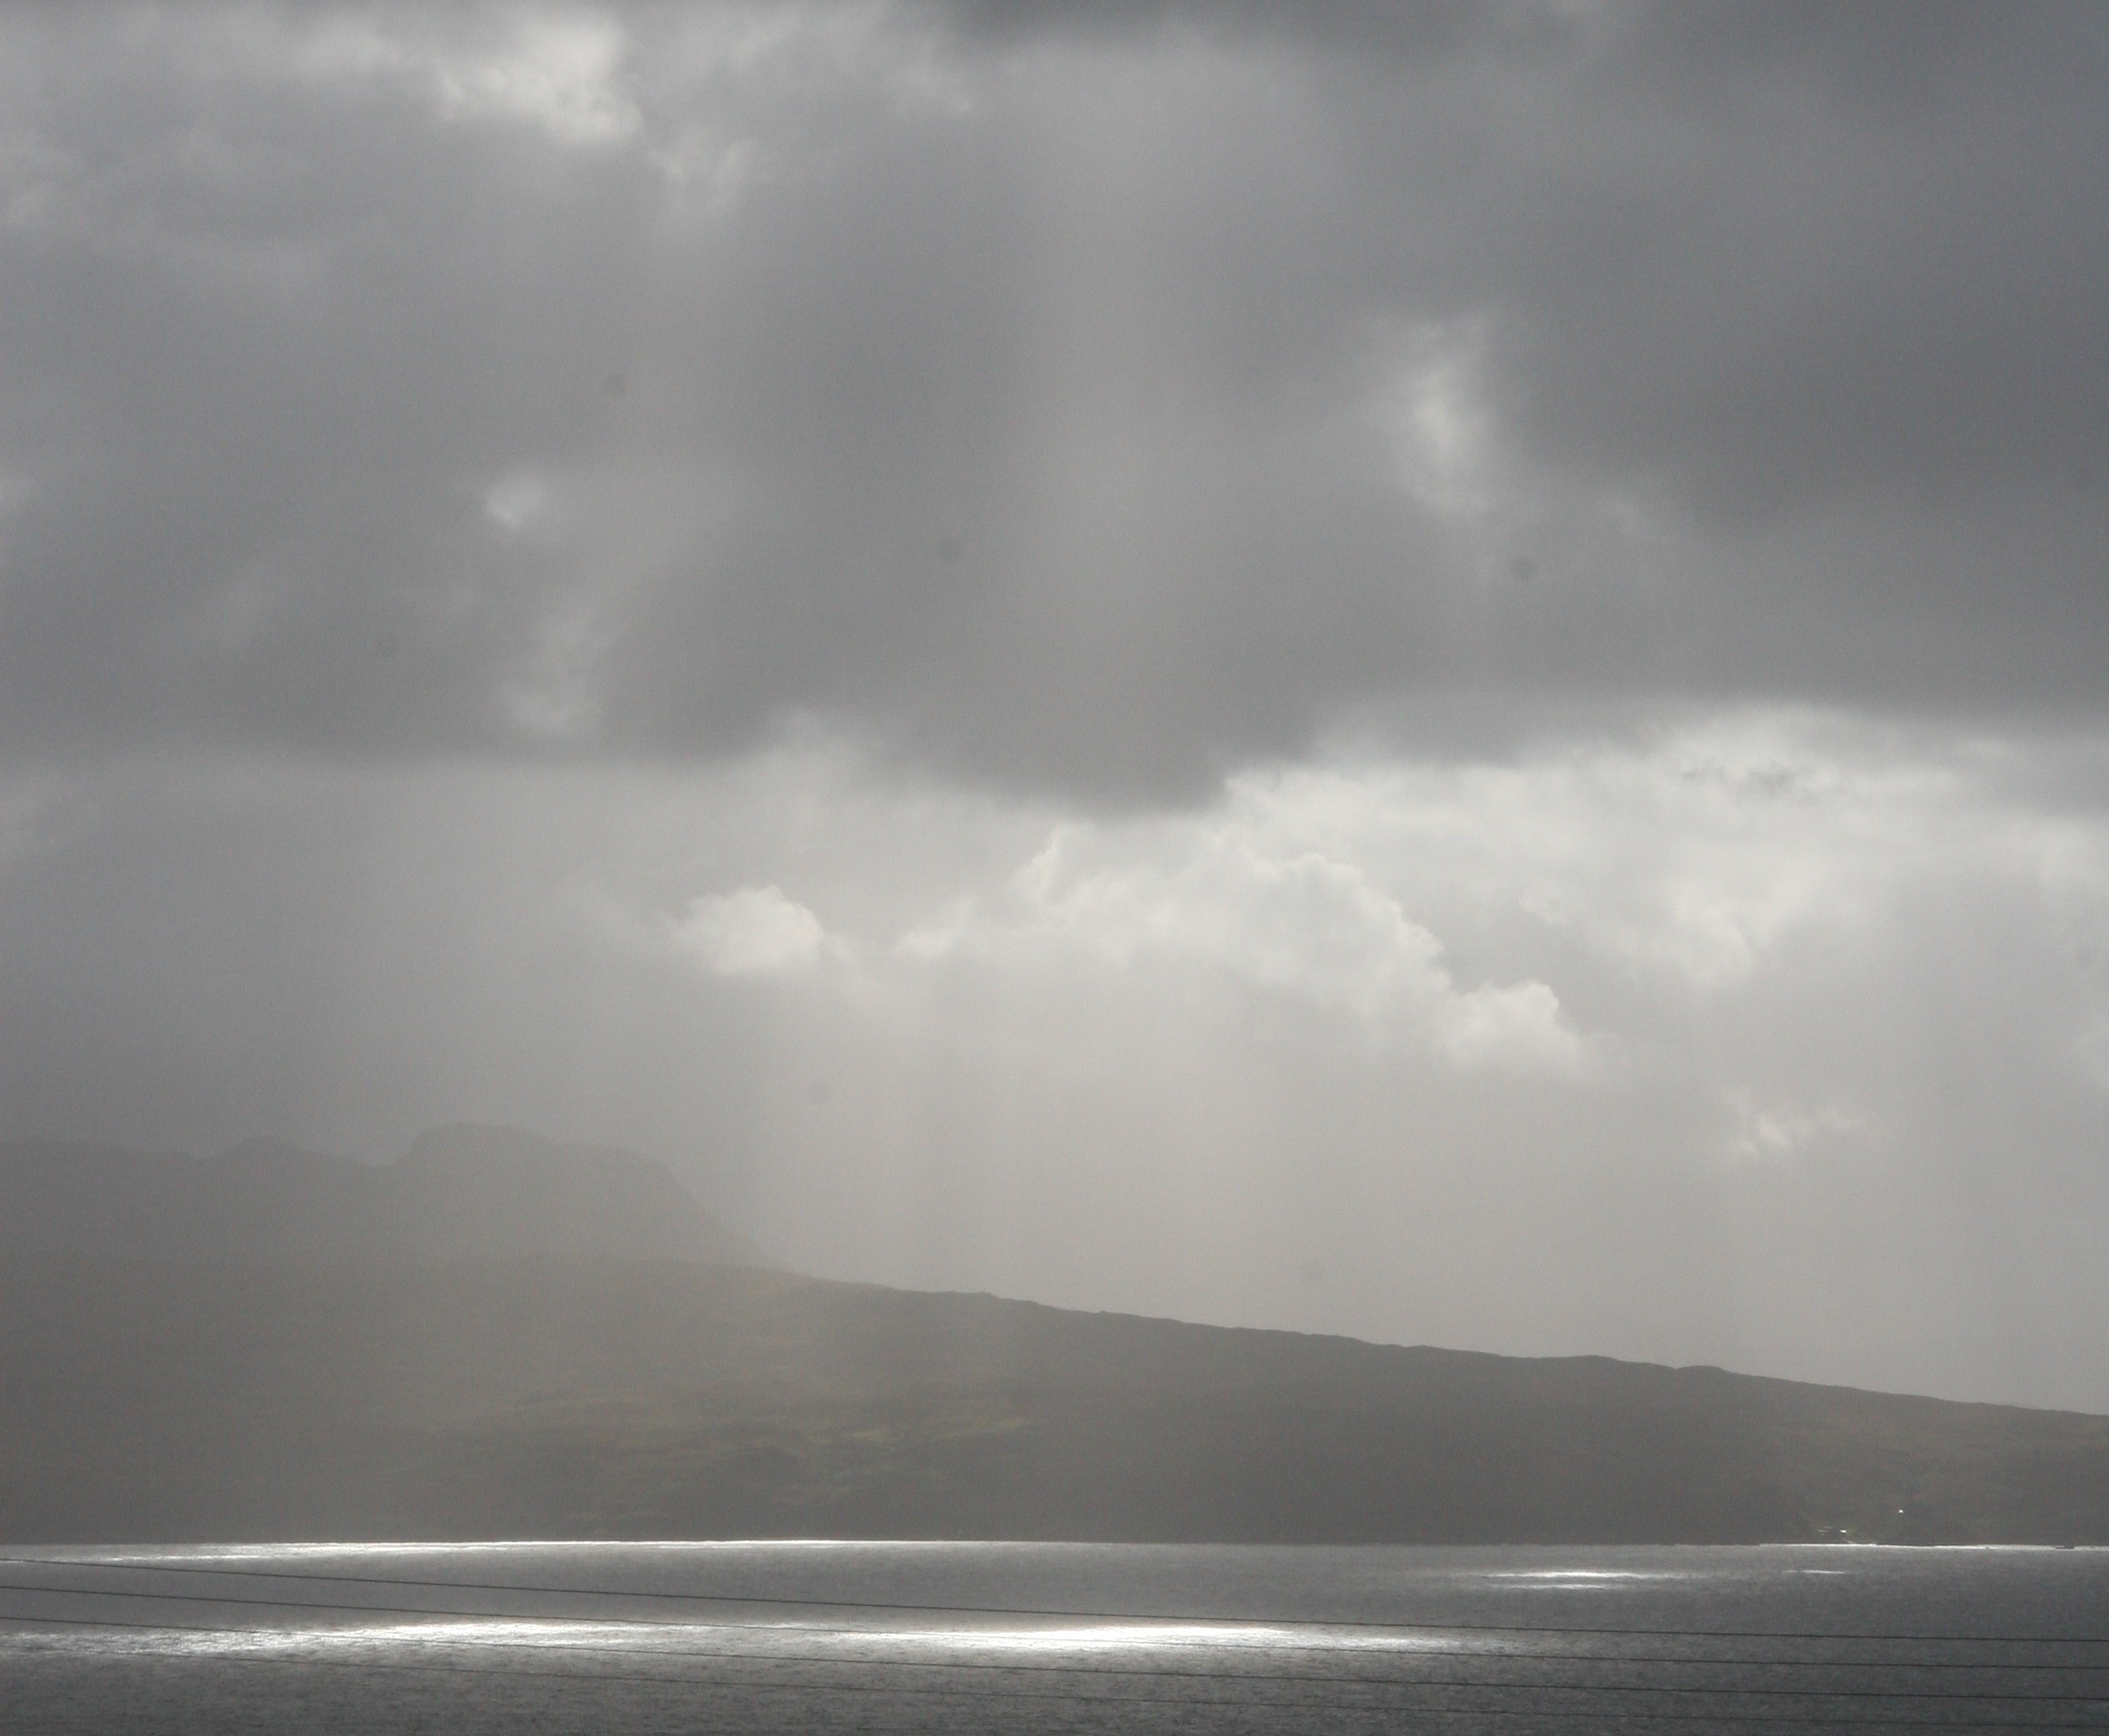 Rays of light piercing through the cloud reflecting off the Sound of Slet, Isle of Skye, Skye White House